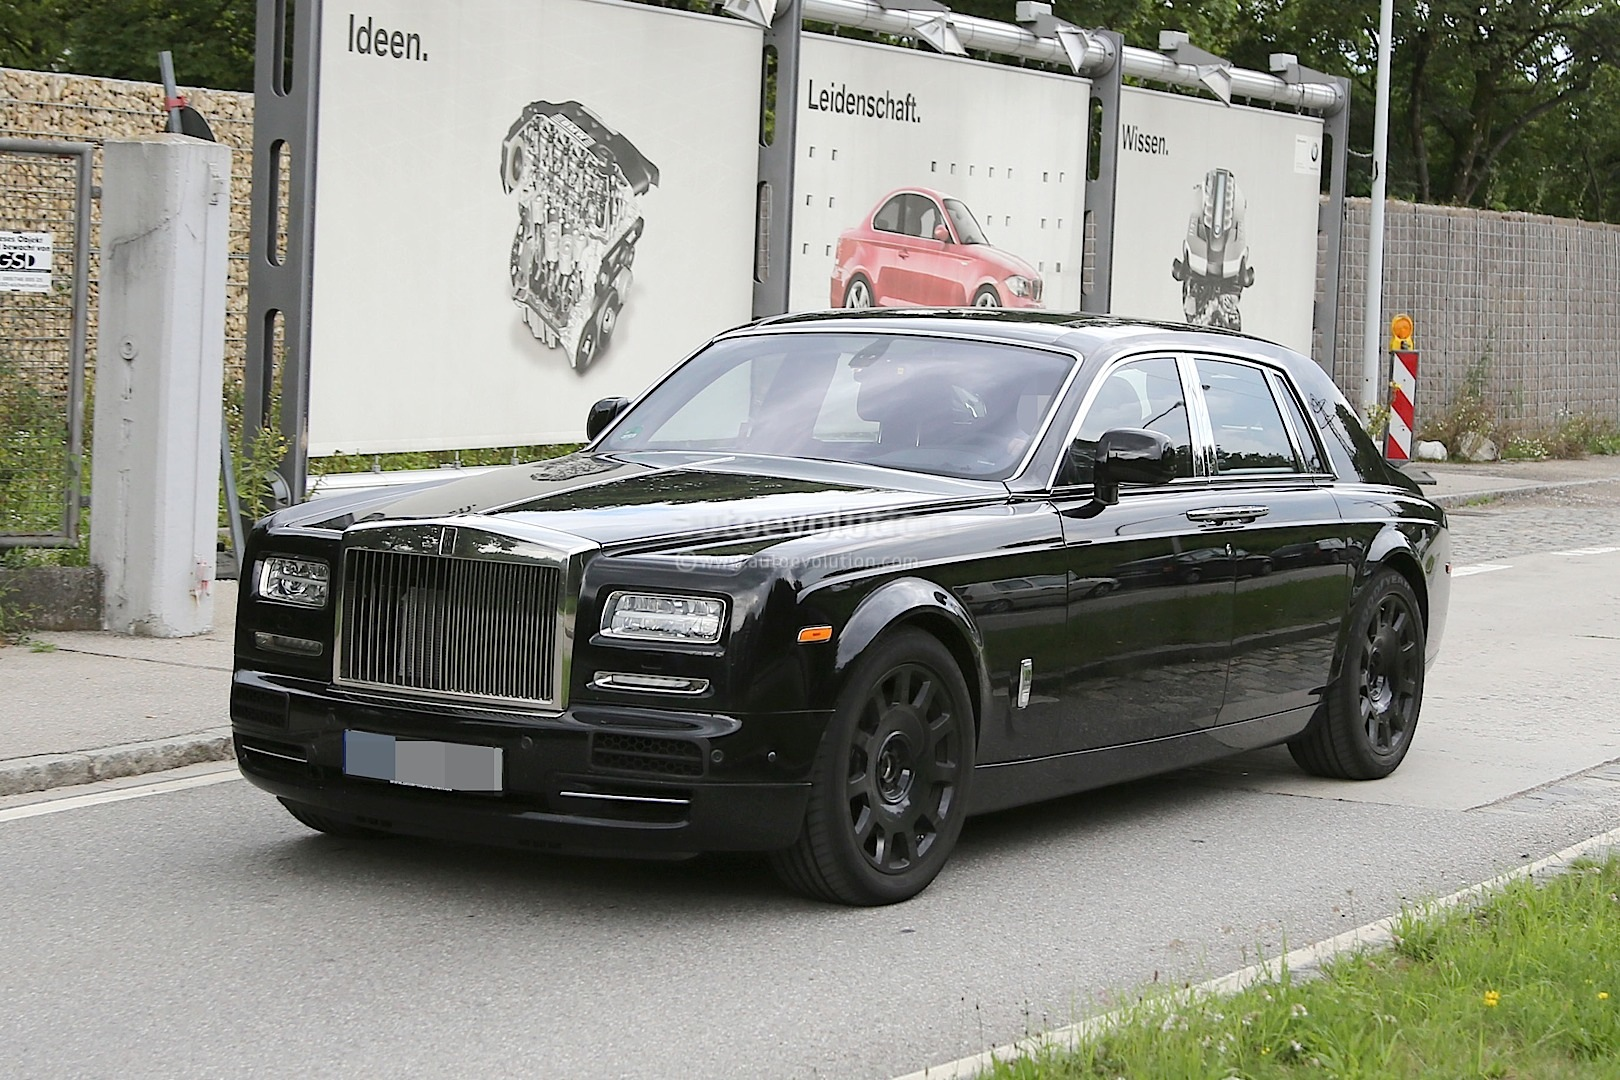 Next Generation Rolls Royce Phantom Interior Spied For The